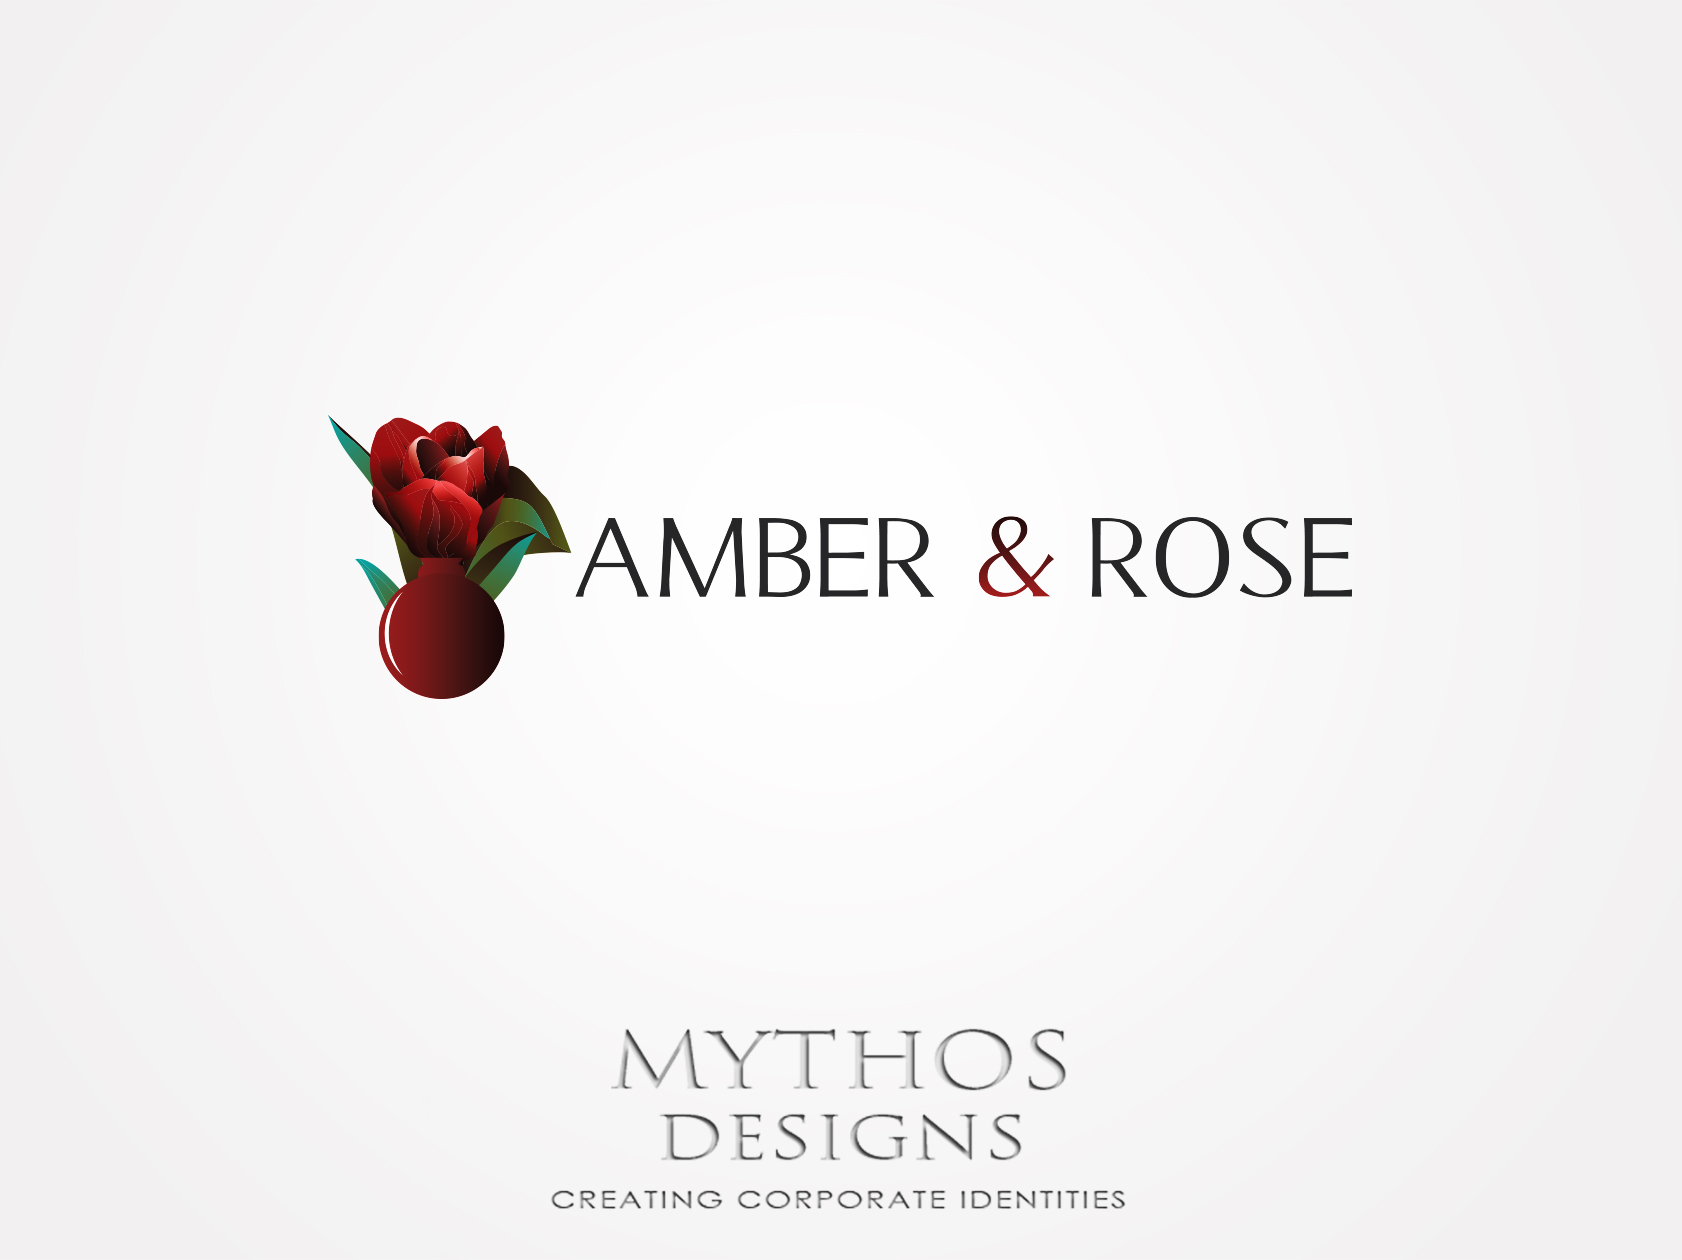 Logo Design by Mythos Designs - Entry No. 83 in the Logo Design Contest Creative Logo Design for Amber & Rose.